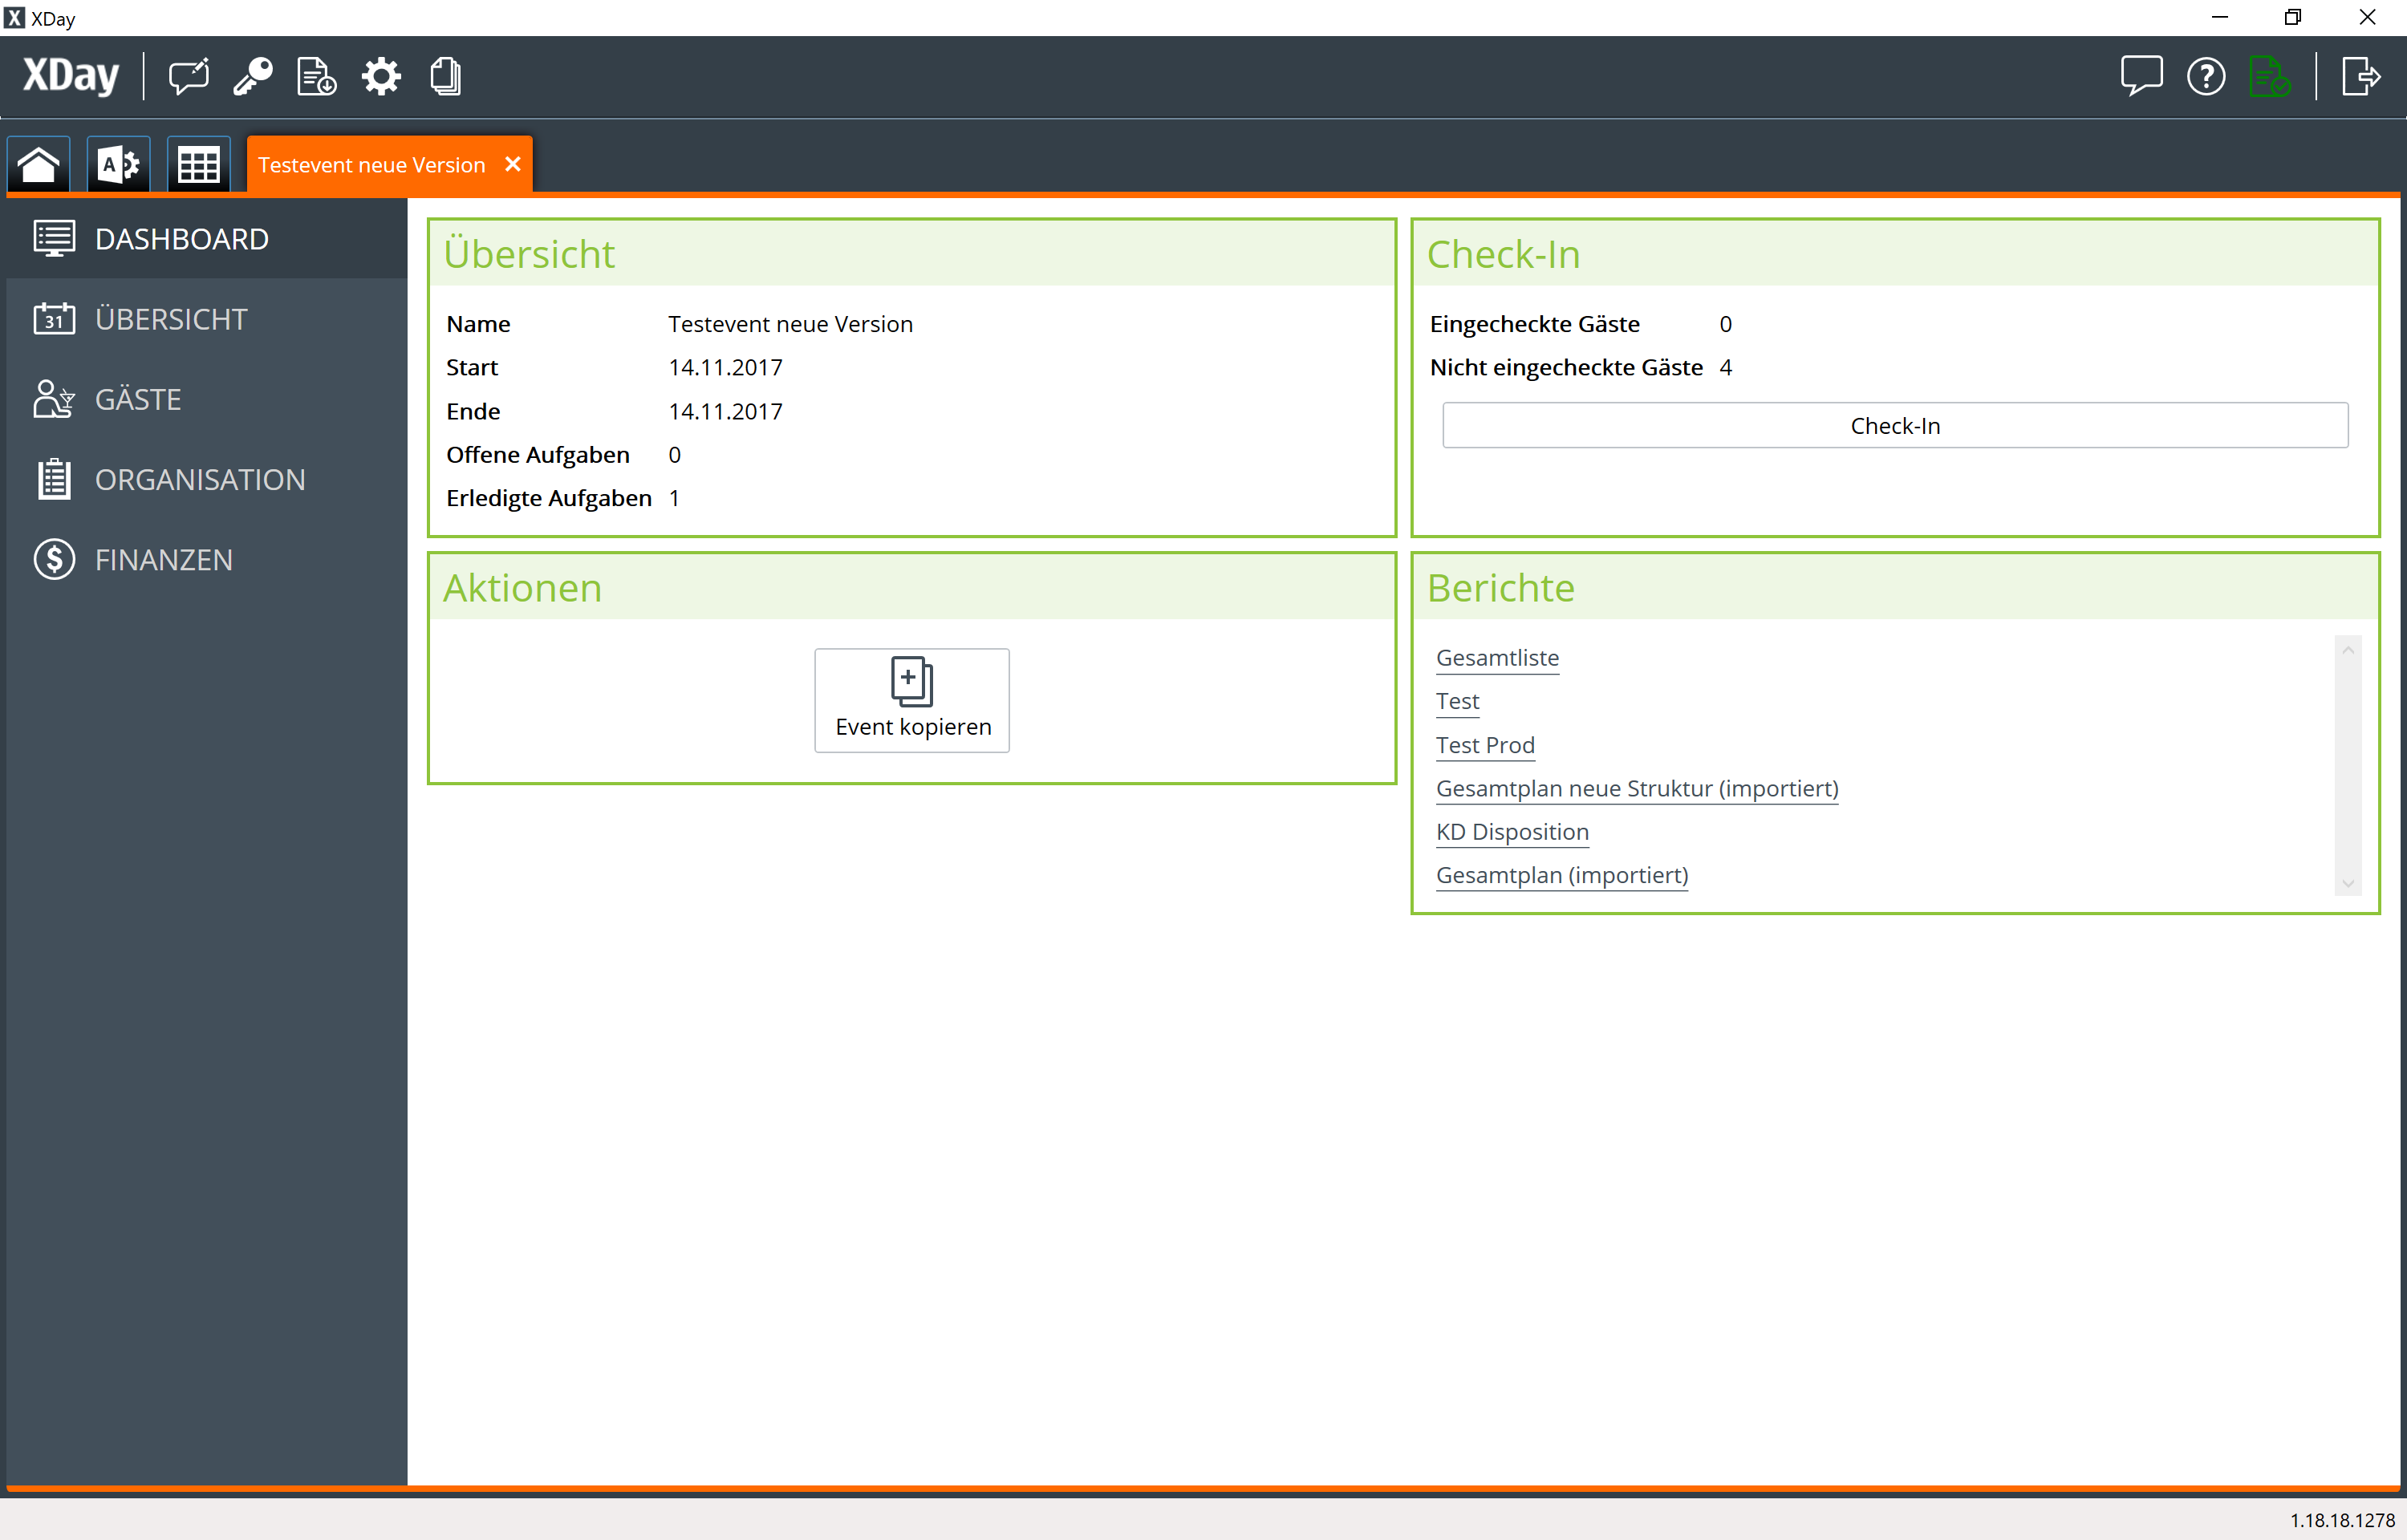 Xday Eventmanagement Software